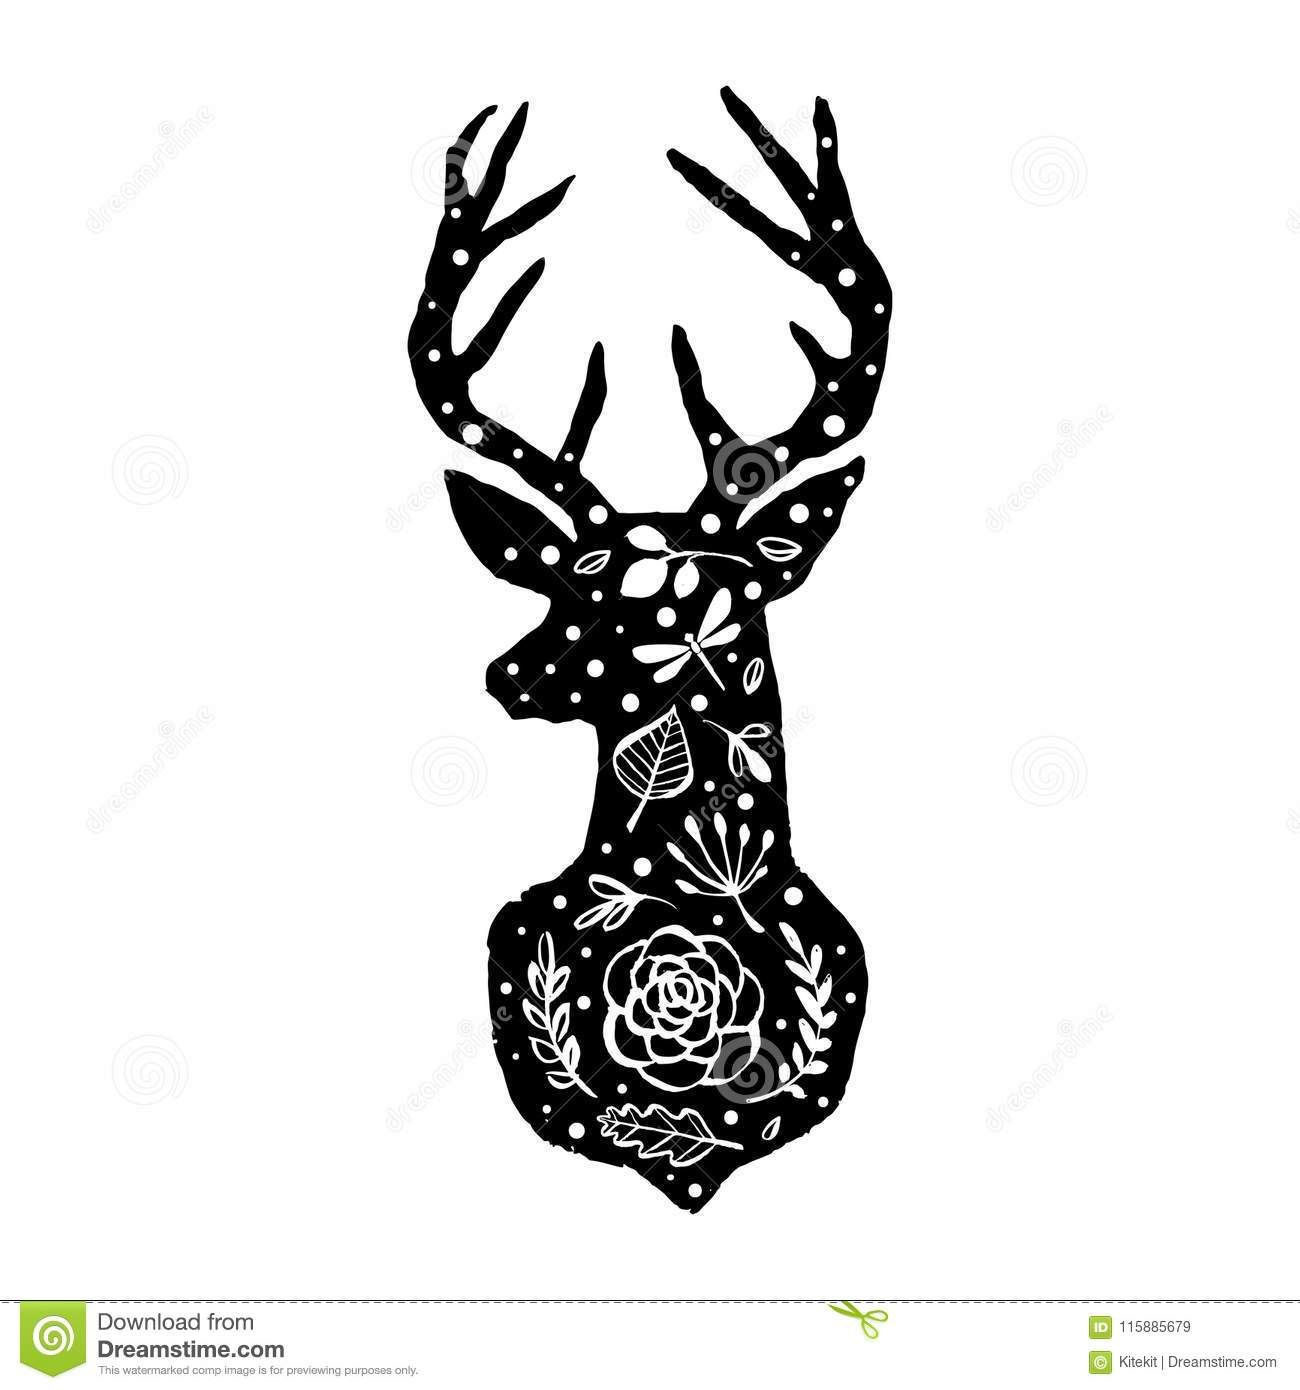 Illustration About Silhouette Of Deer With Flower Pattern Hand Drawn Design Elements Black And White Vec In 2020 Scandinavian Art Hand Drawn Design How To Draw Hands